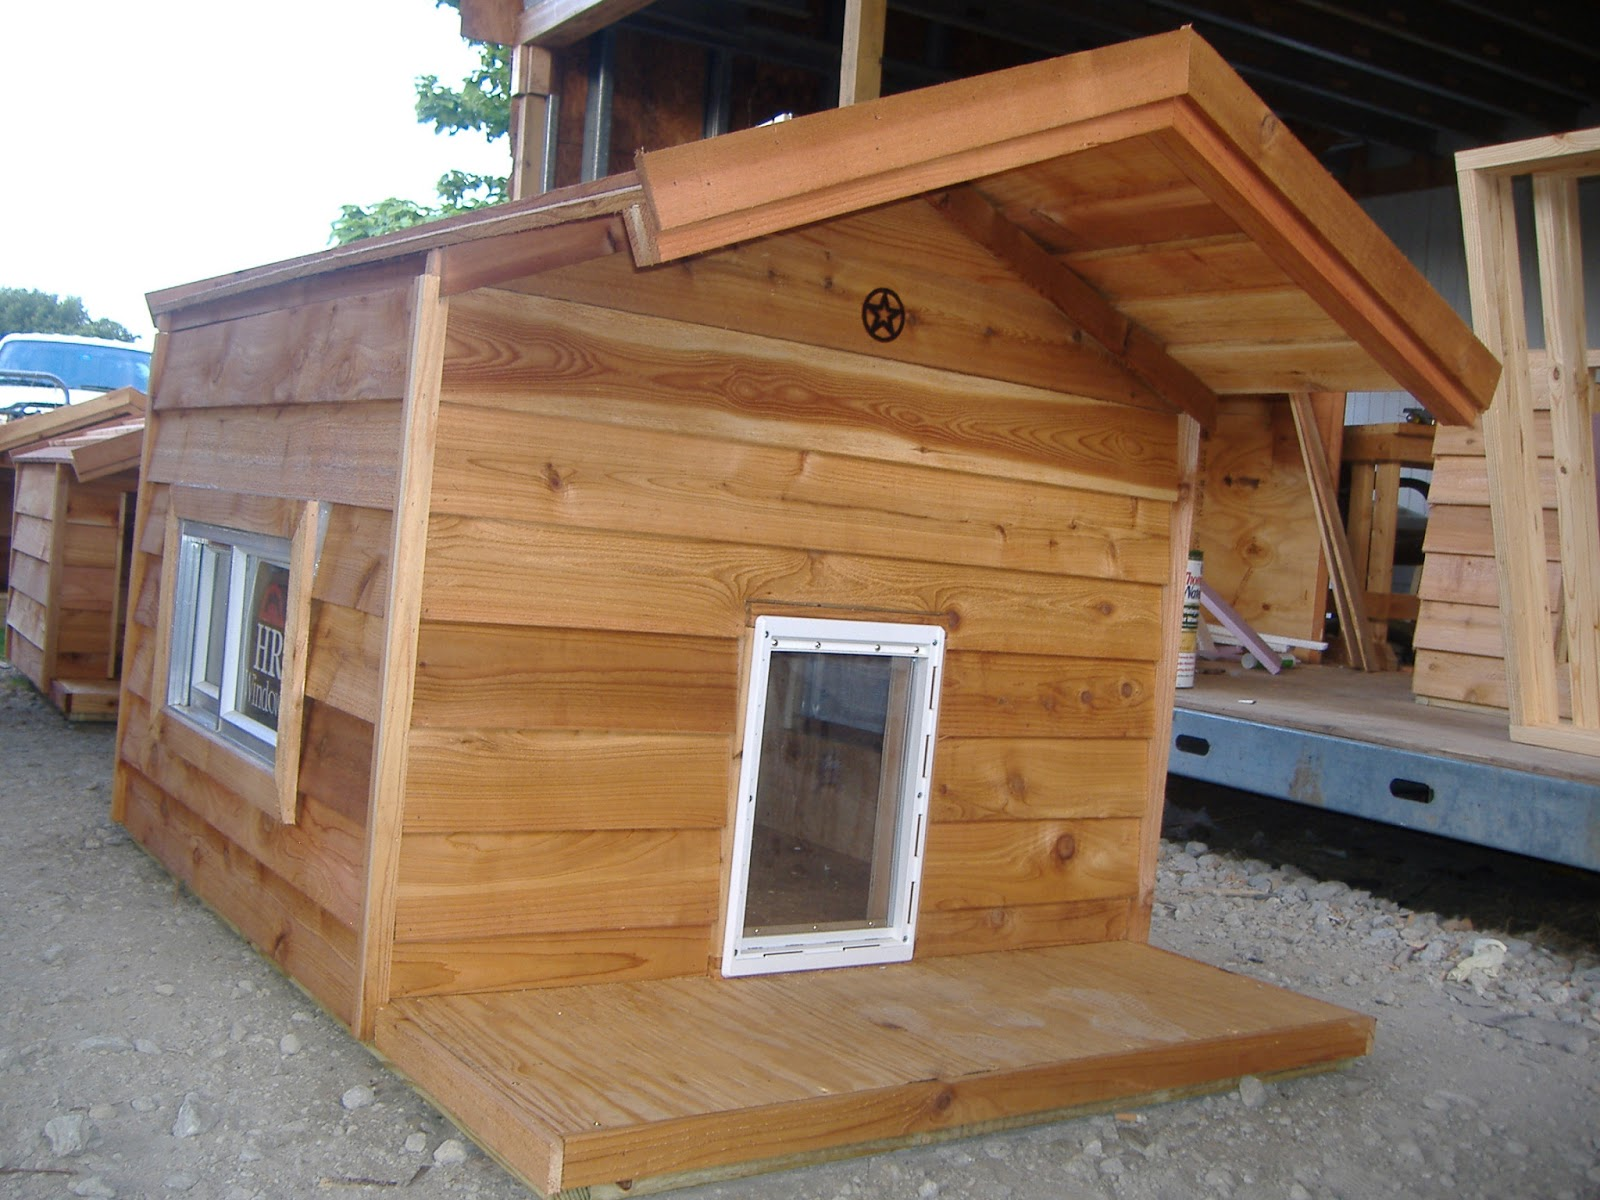 Giant Dog Houses For S...